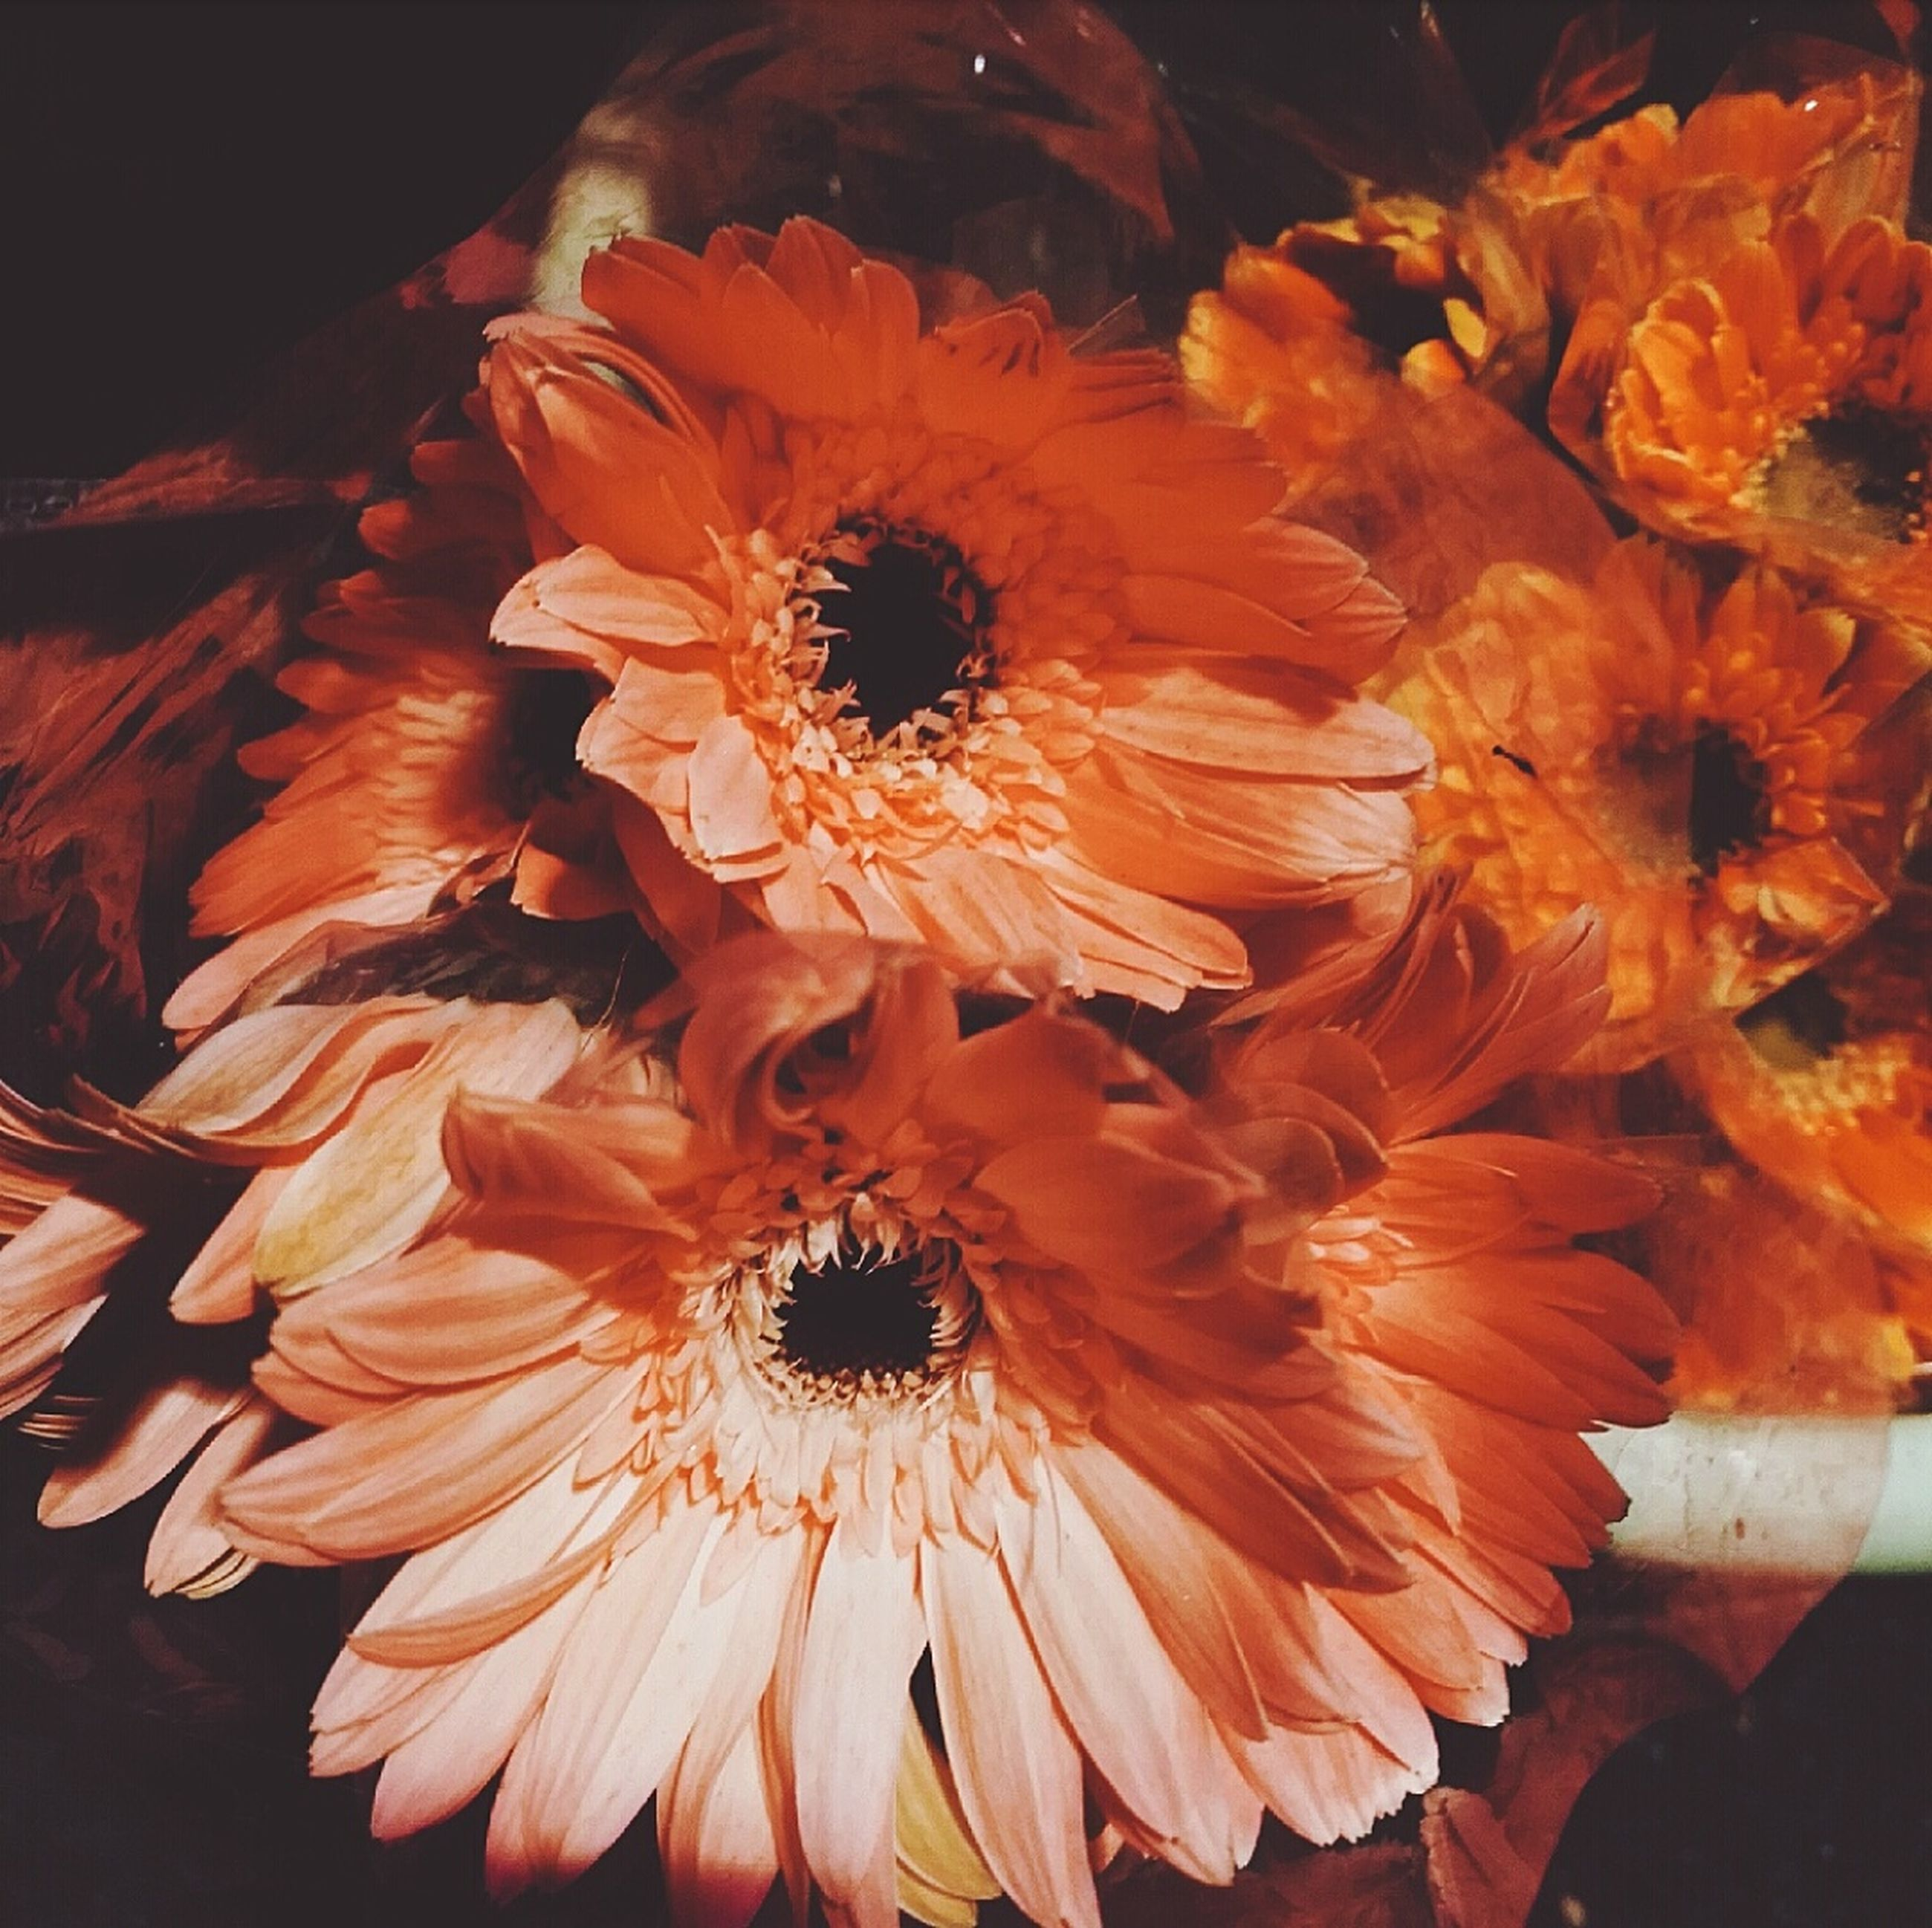 flower, fragility, beauty in nature, orange color, petal, nature, freshness, flower head, no people, pollen, close-up, outdoors, day, gerbera daisy